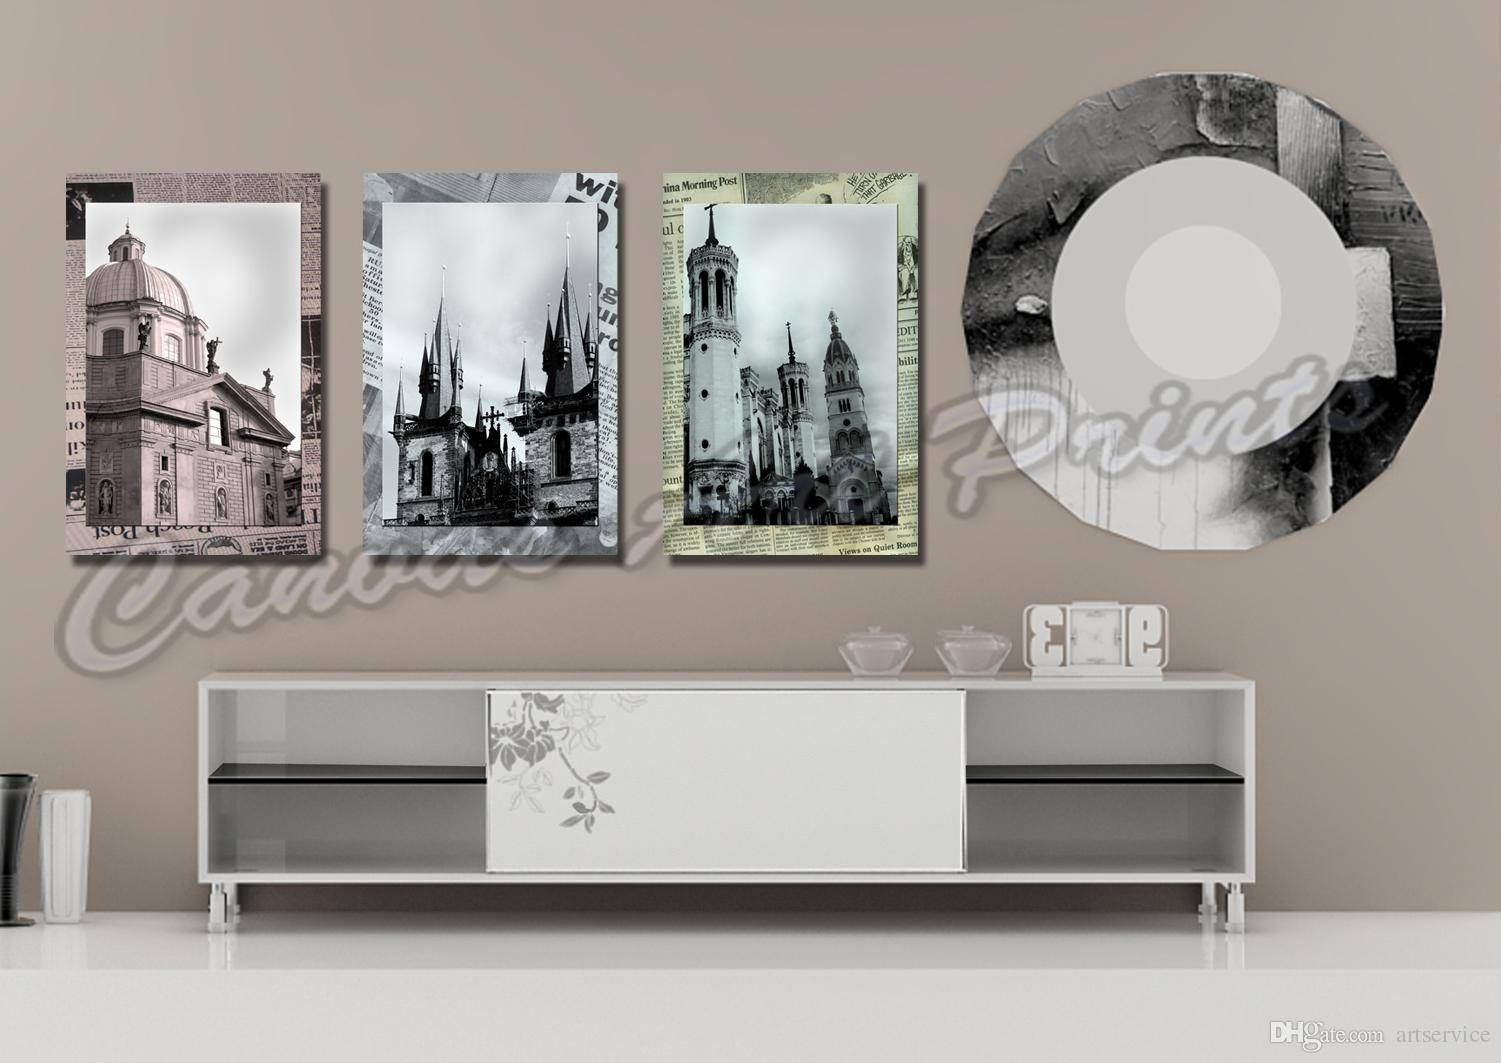 2018 Cheap Large Framed Art Home Decor Wall Paintings 3 Panel Wall With Best And Newest Large Framed Wall Art (View 1 of 20)